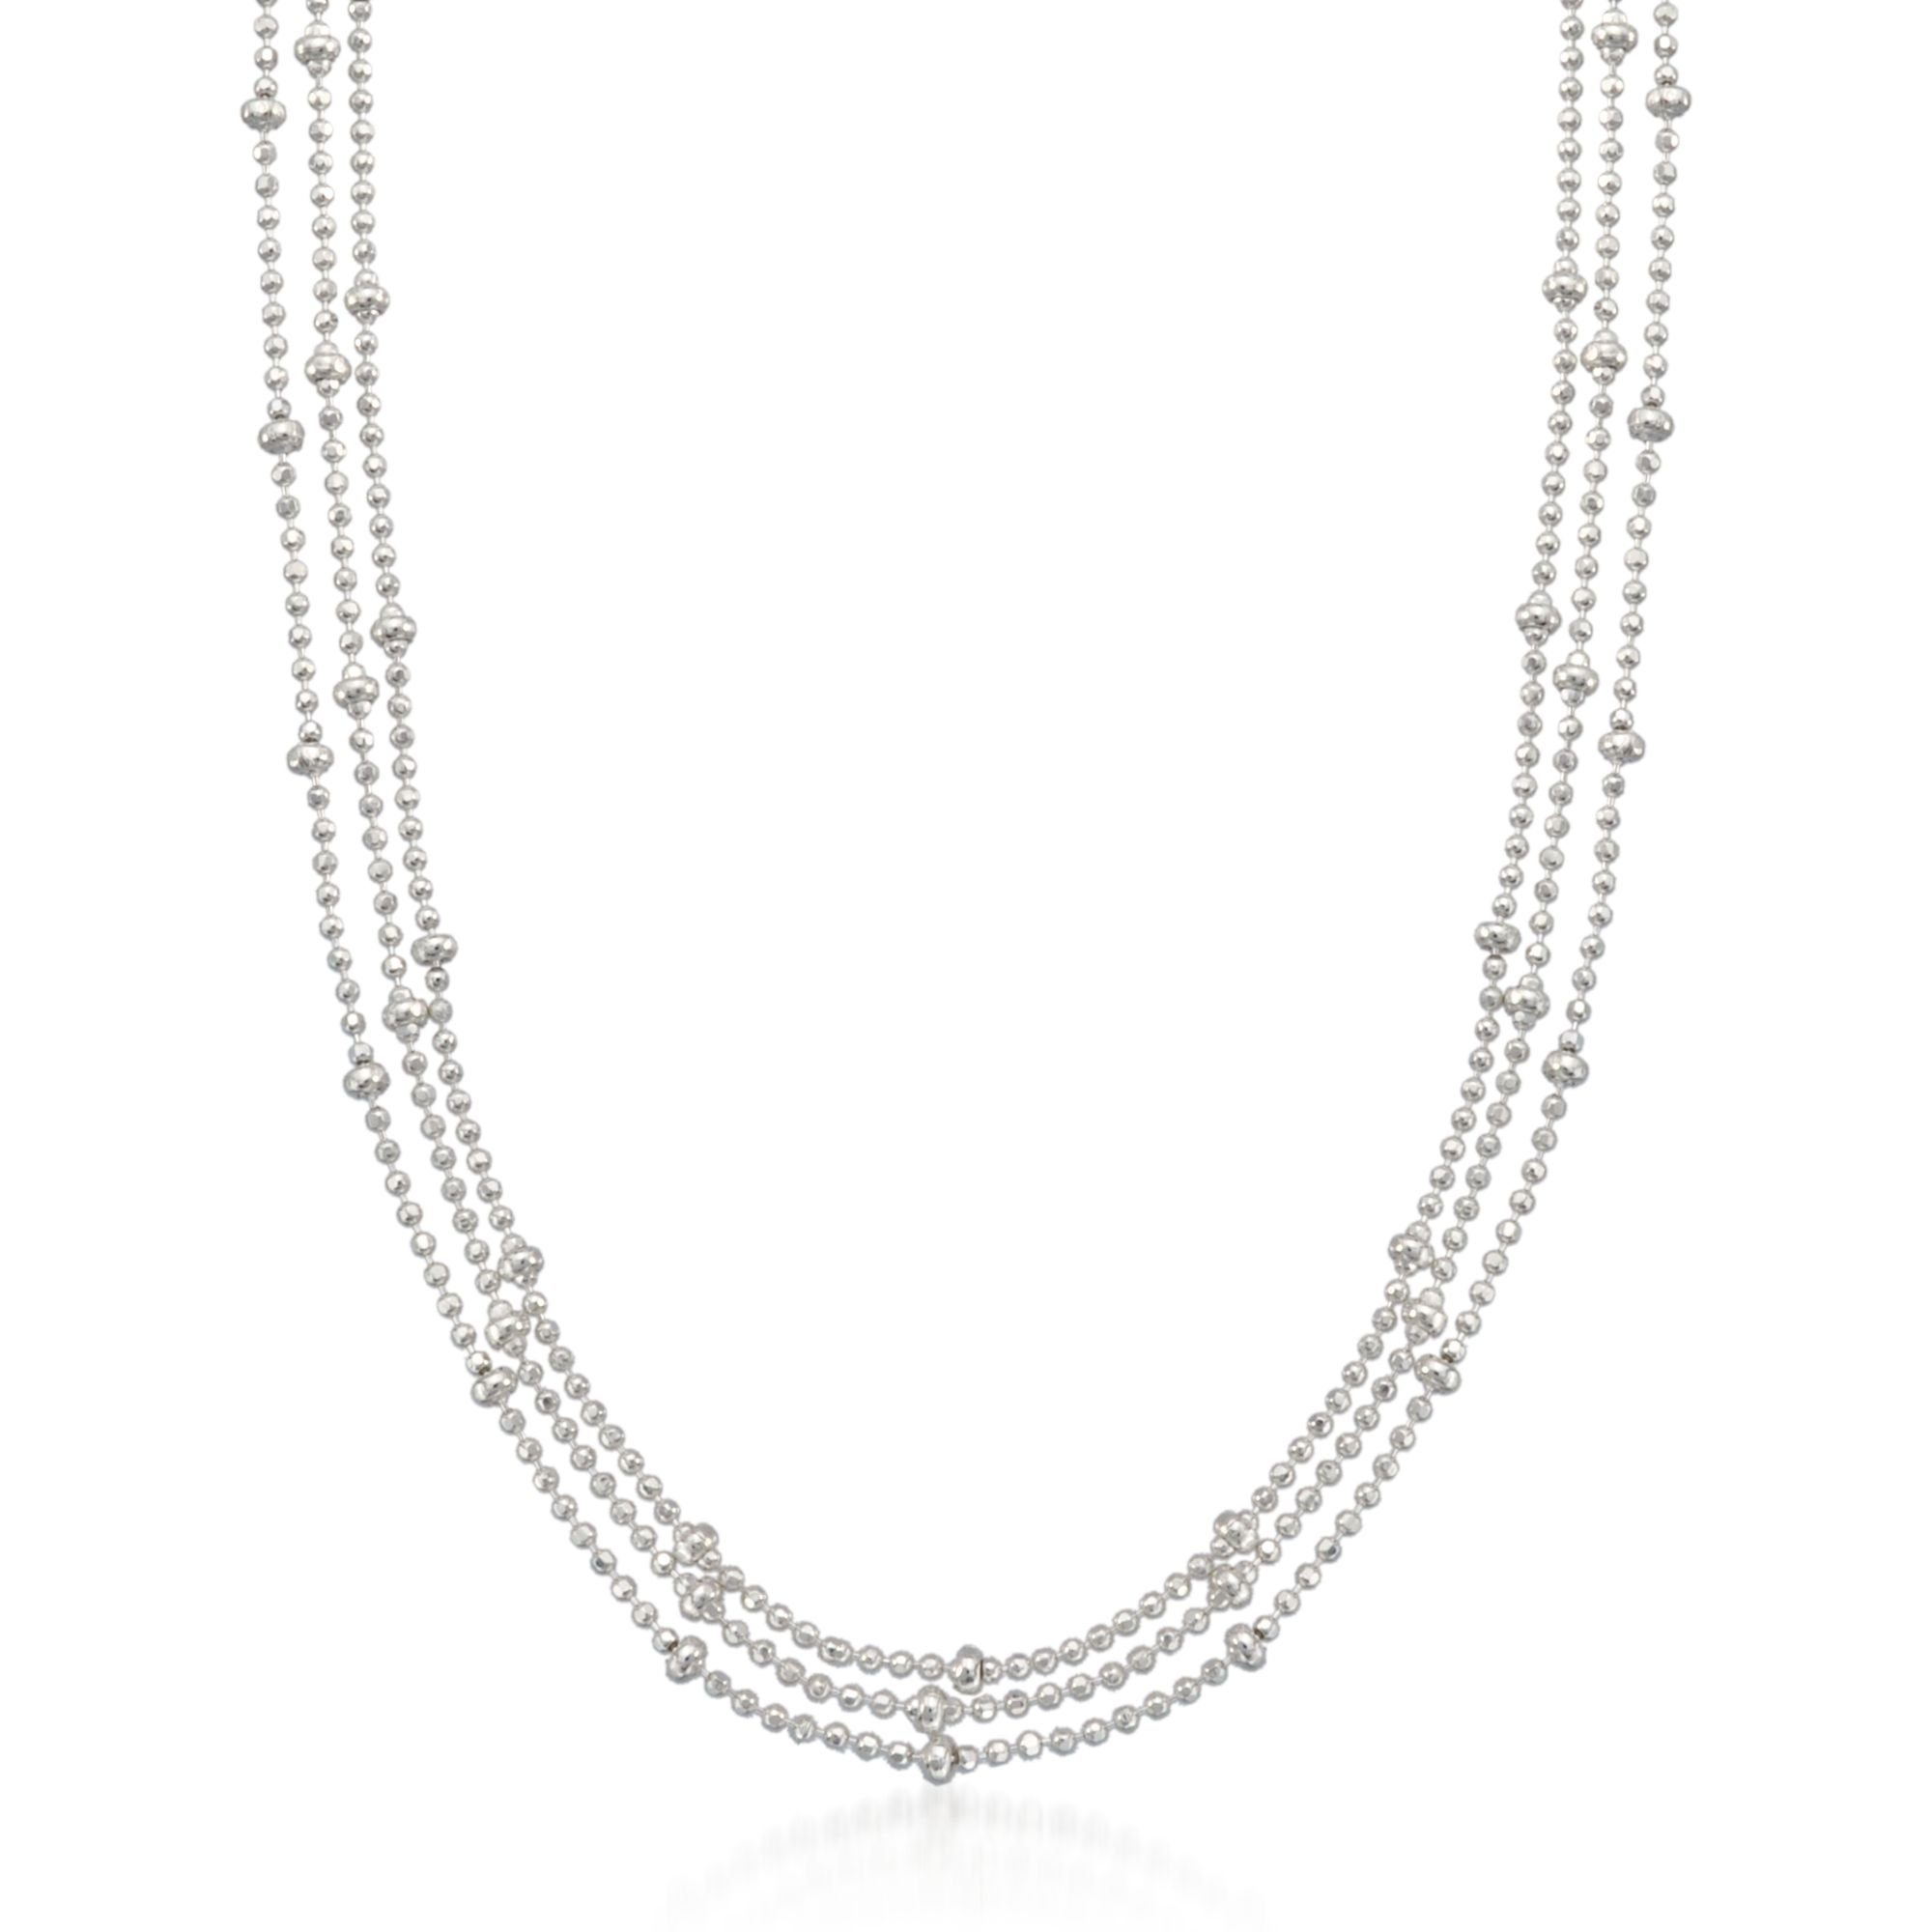 Ross-Simons Italian Sterling Silver Three-Strand Bead Chain Necklace